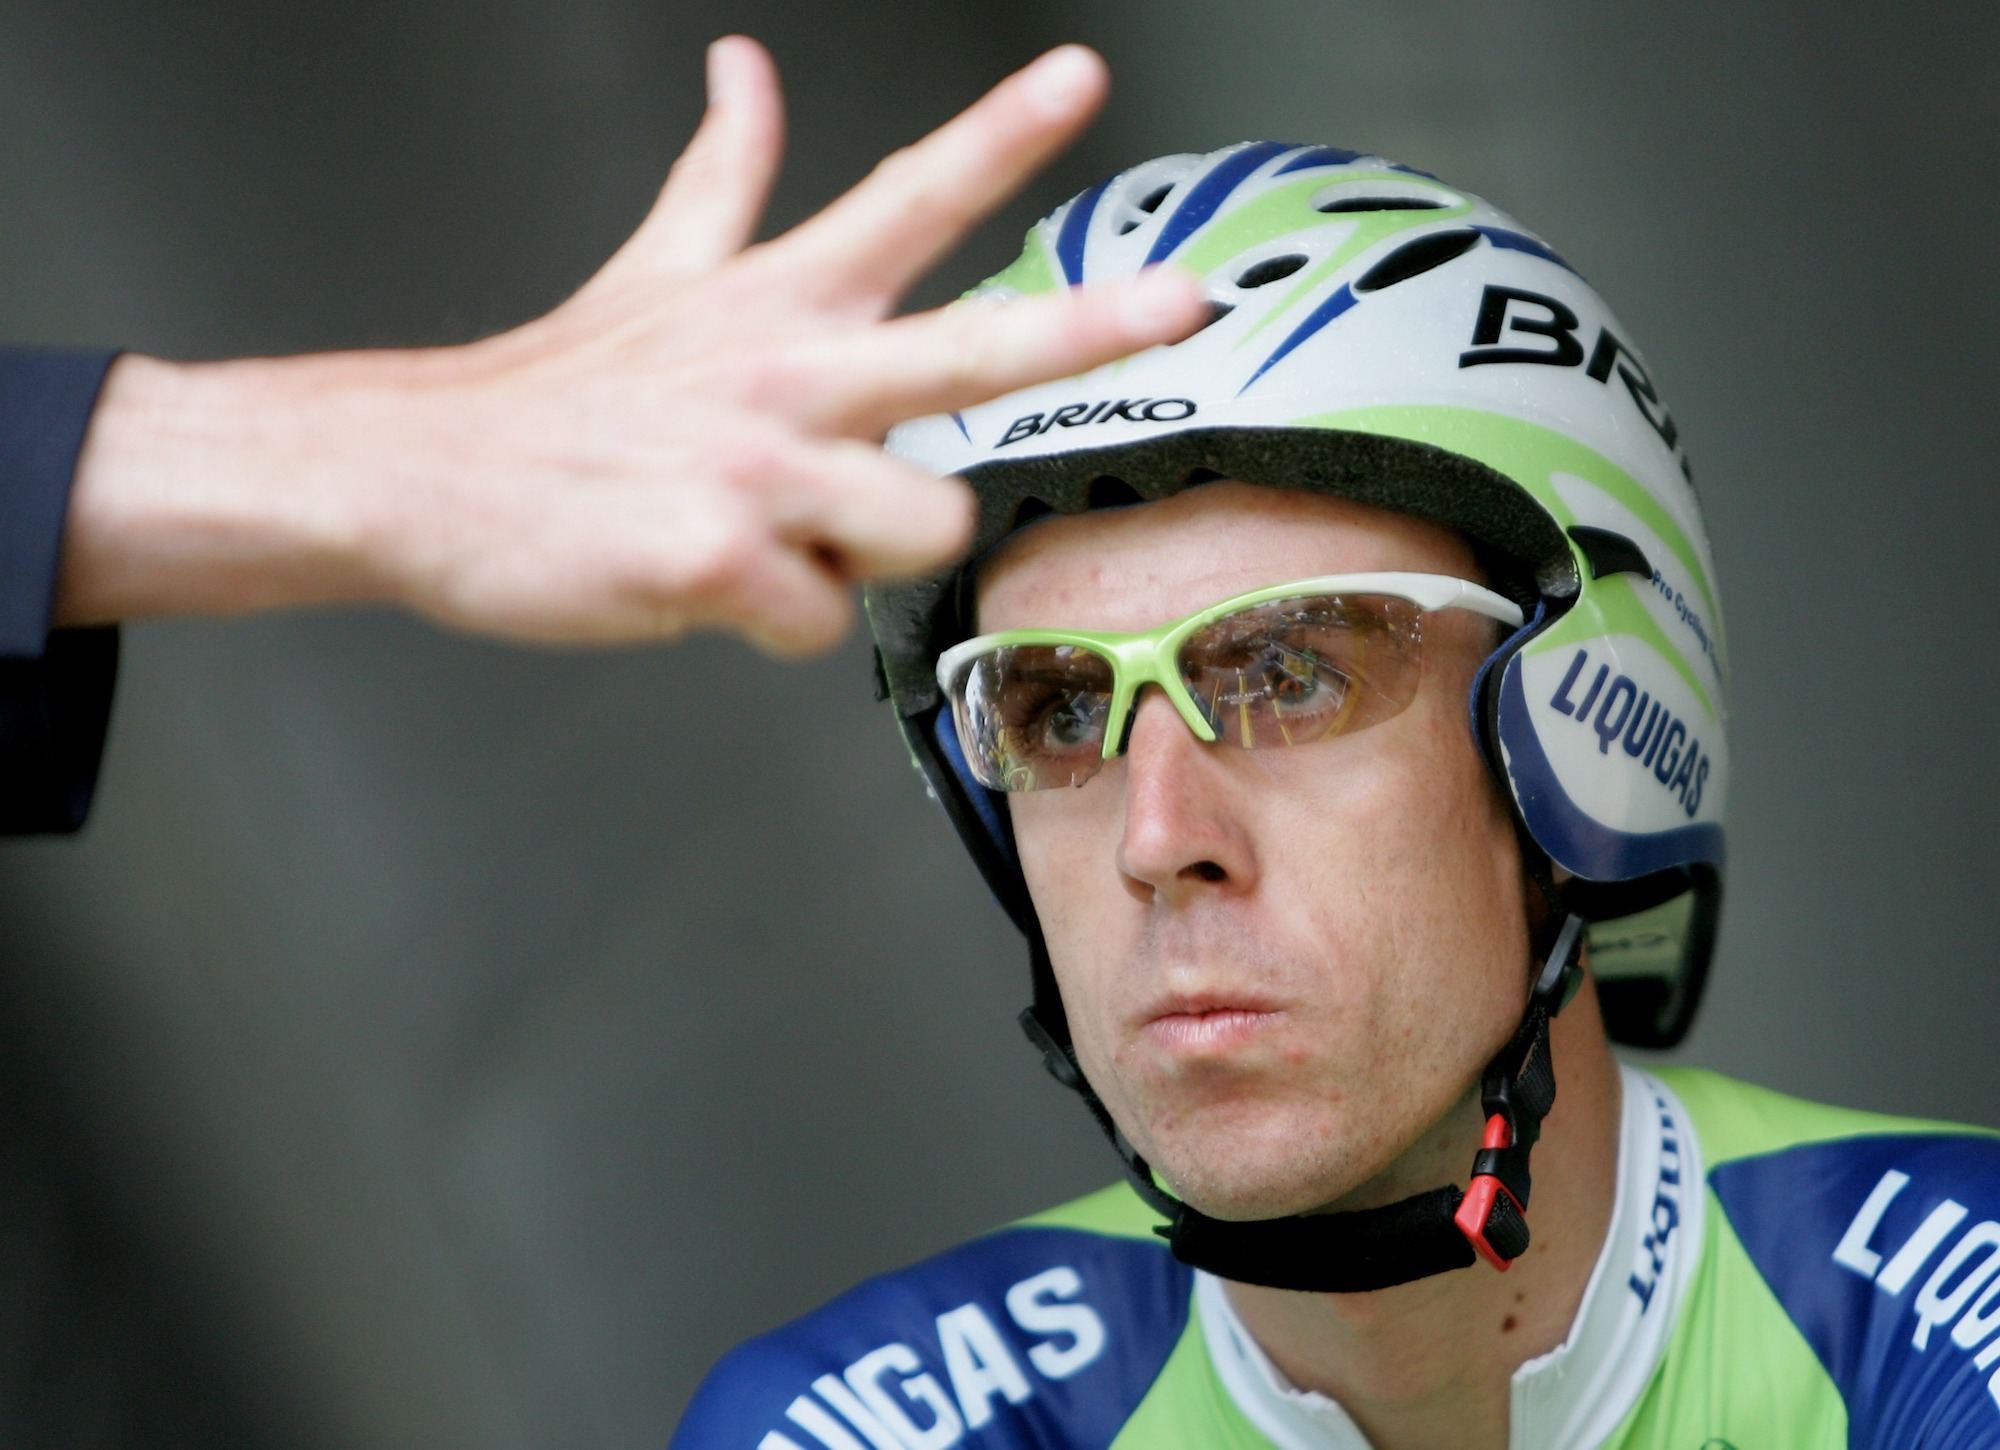 'What the hell am I doing?': How riders such as Dan Martin launched their careers on the French circuit